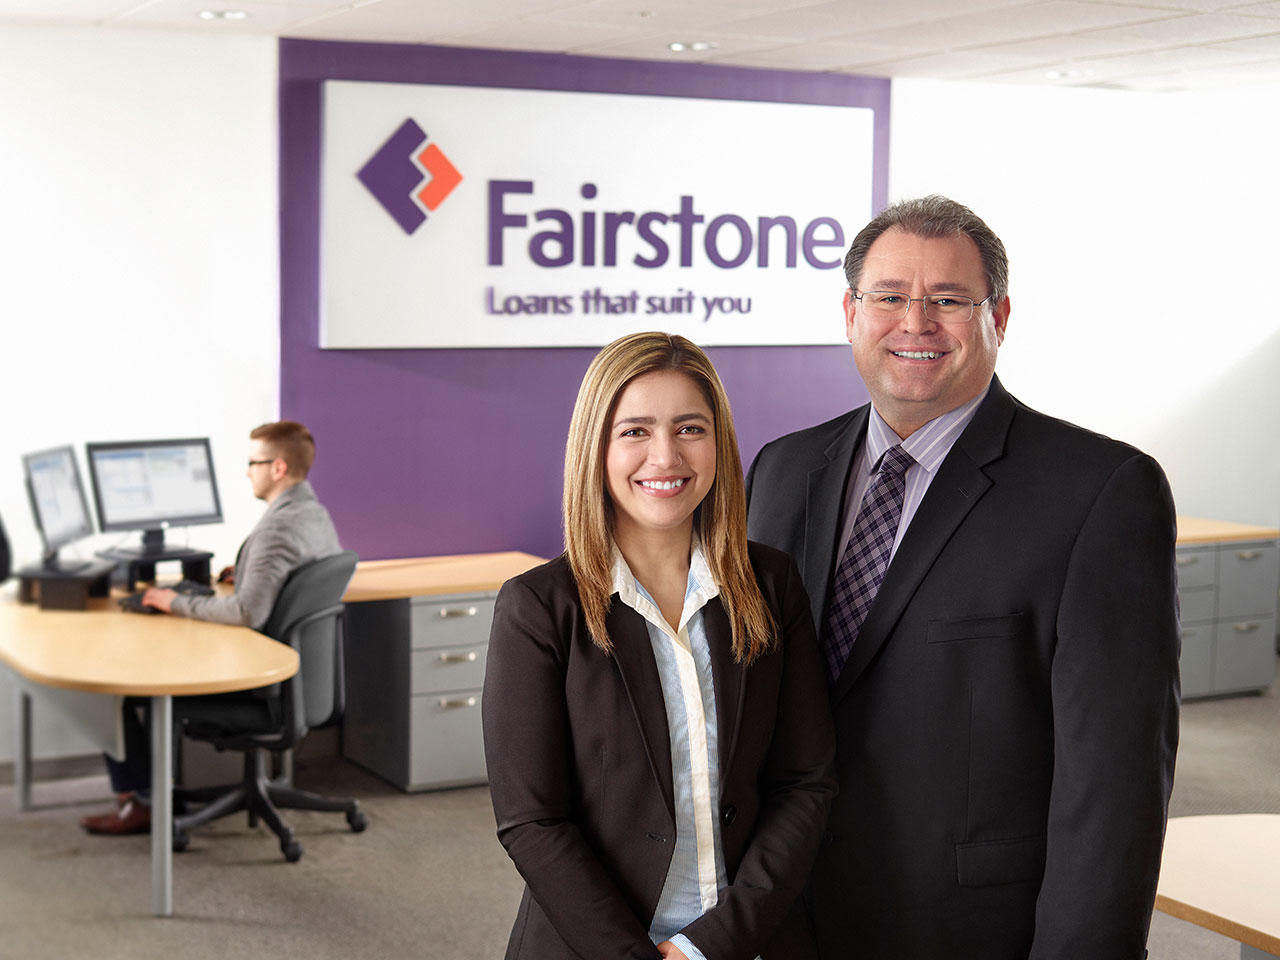 About Fairstone